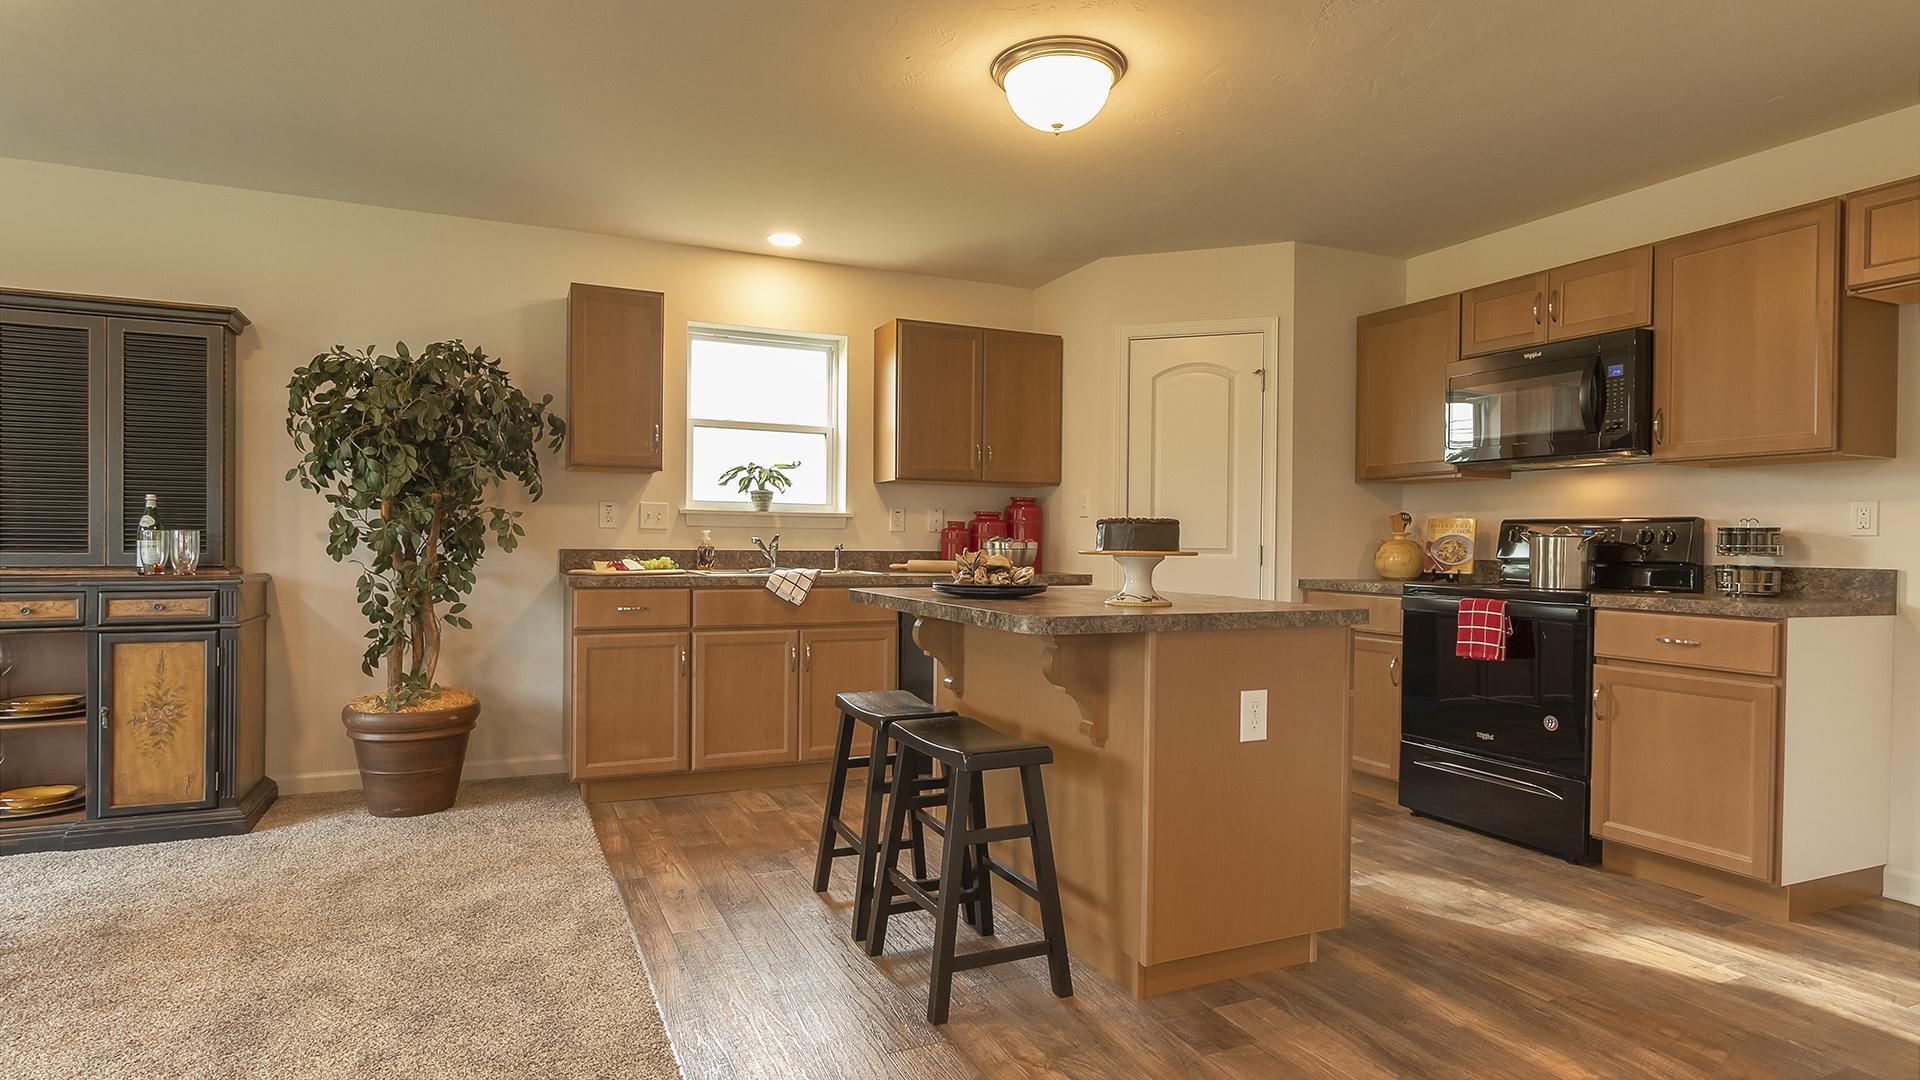 Kitchen featured in the Rosewood By S & A Homes in Altoona, PA